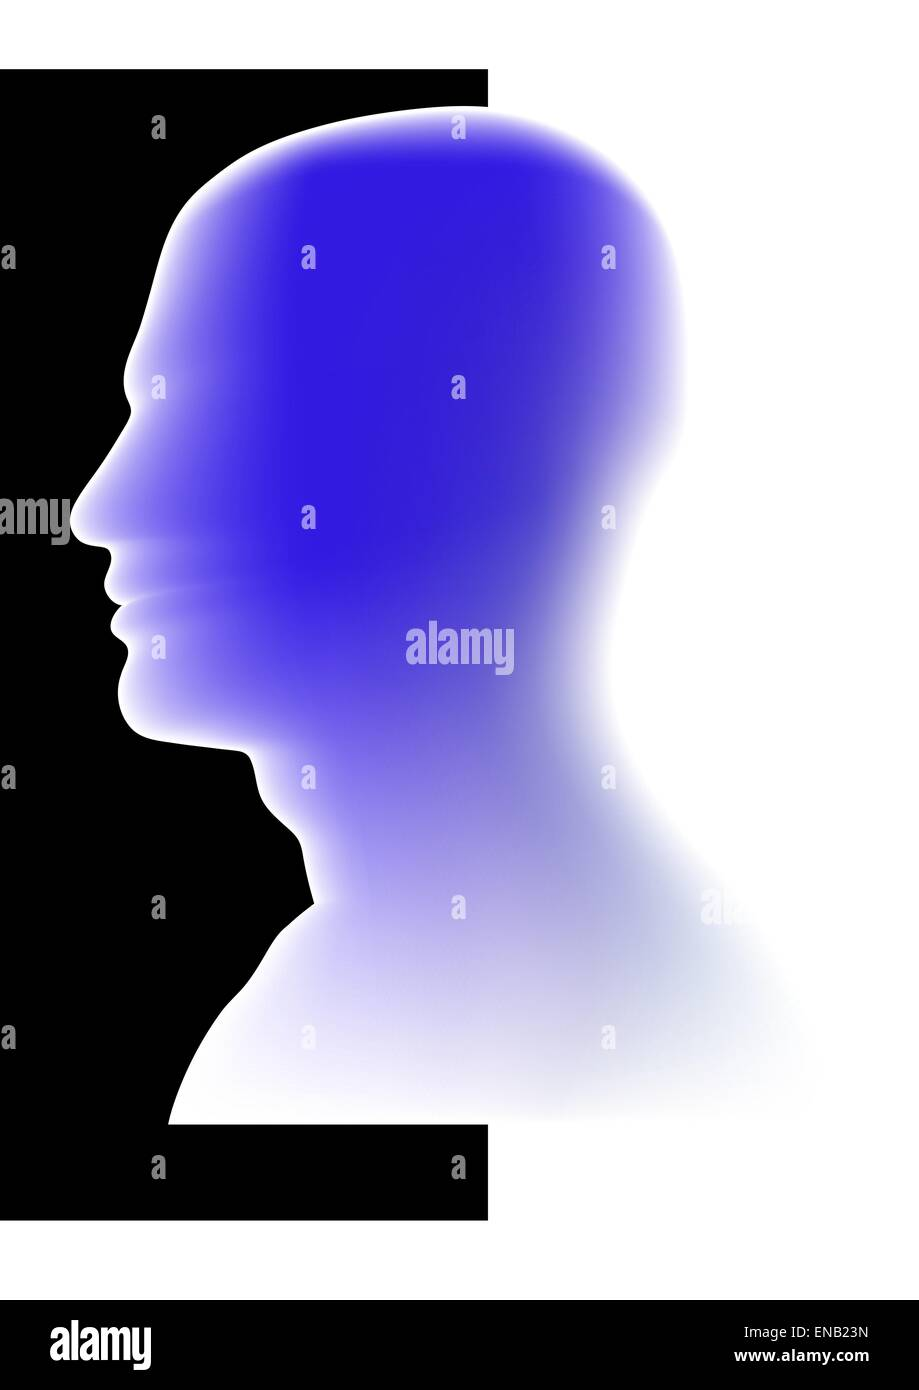 Abstract image - Glowing  Head - Intelligence - Idea - Stock Vector